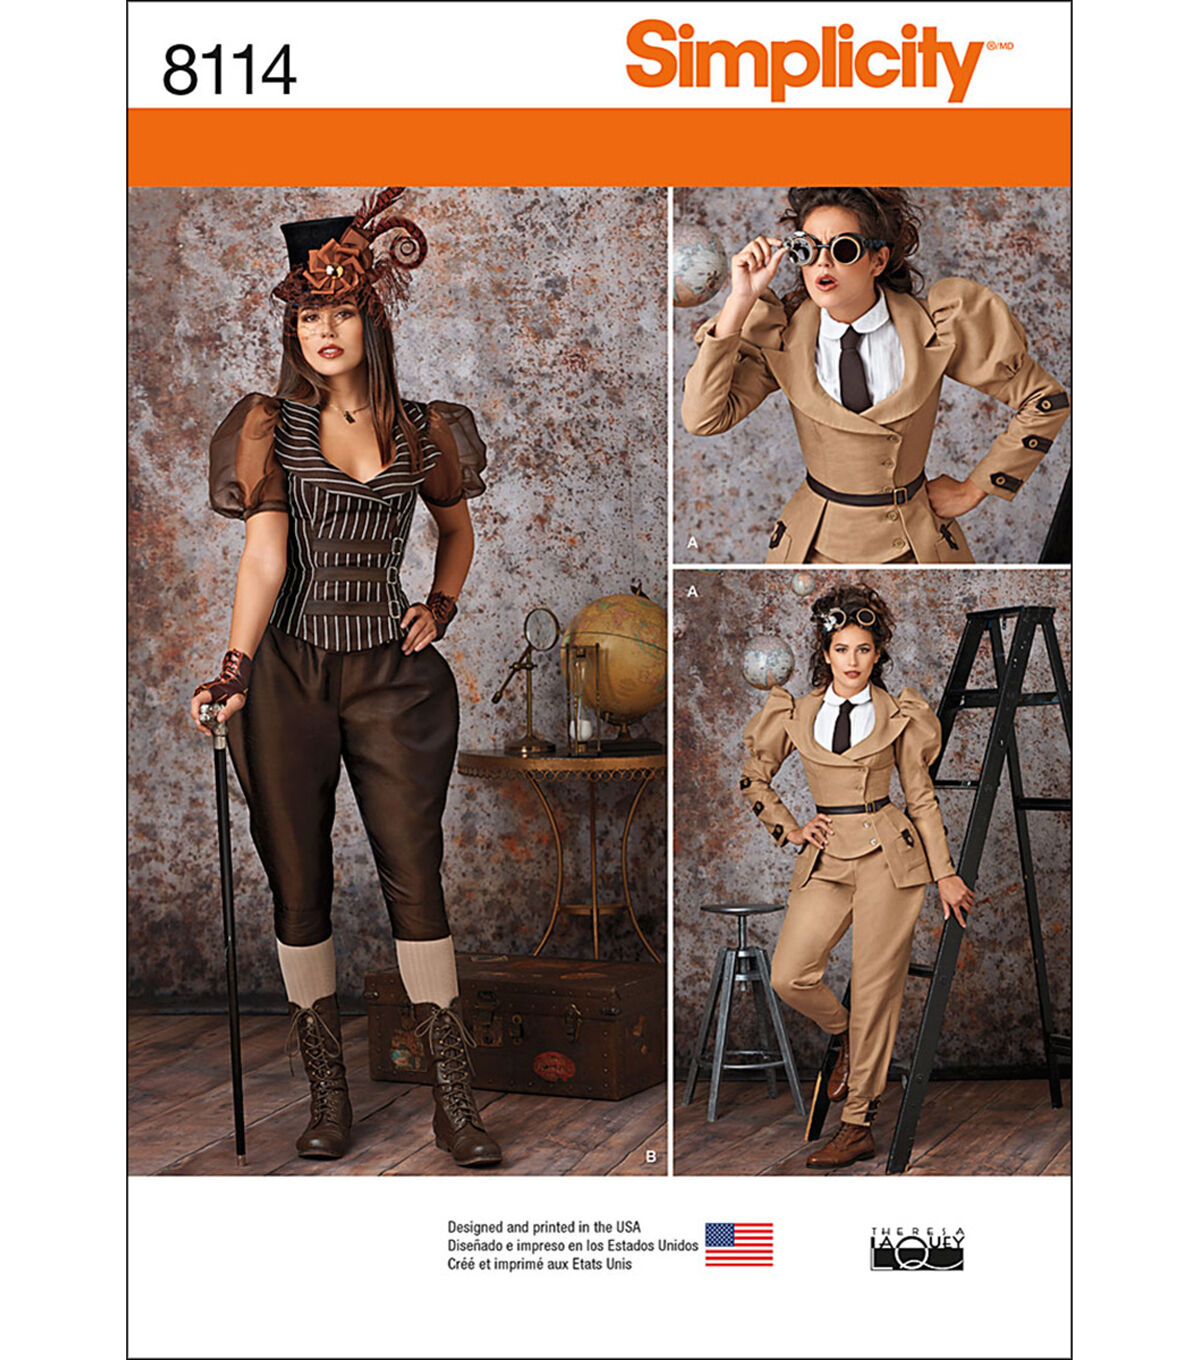 Steampunk Sewing Patterns- Dresses, Coats, Plus Sizes, Men's Patterns Simplicity Patterns US8114H5 Costumes - 6 - 8 - 10 - 12 - 14 $20.95 AT vintagedancer.com